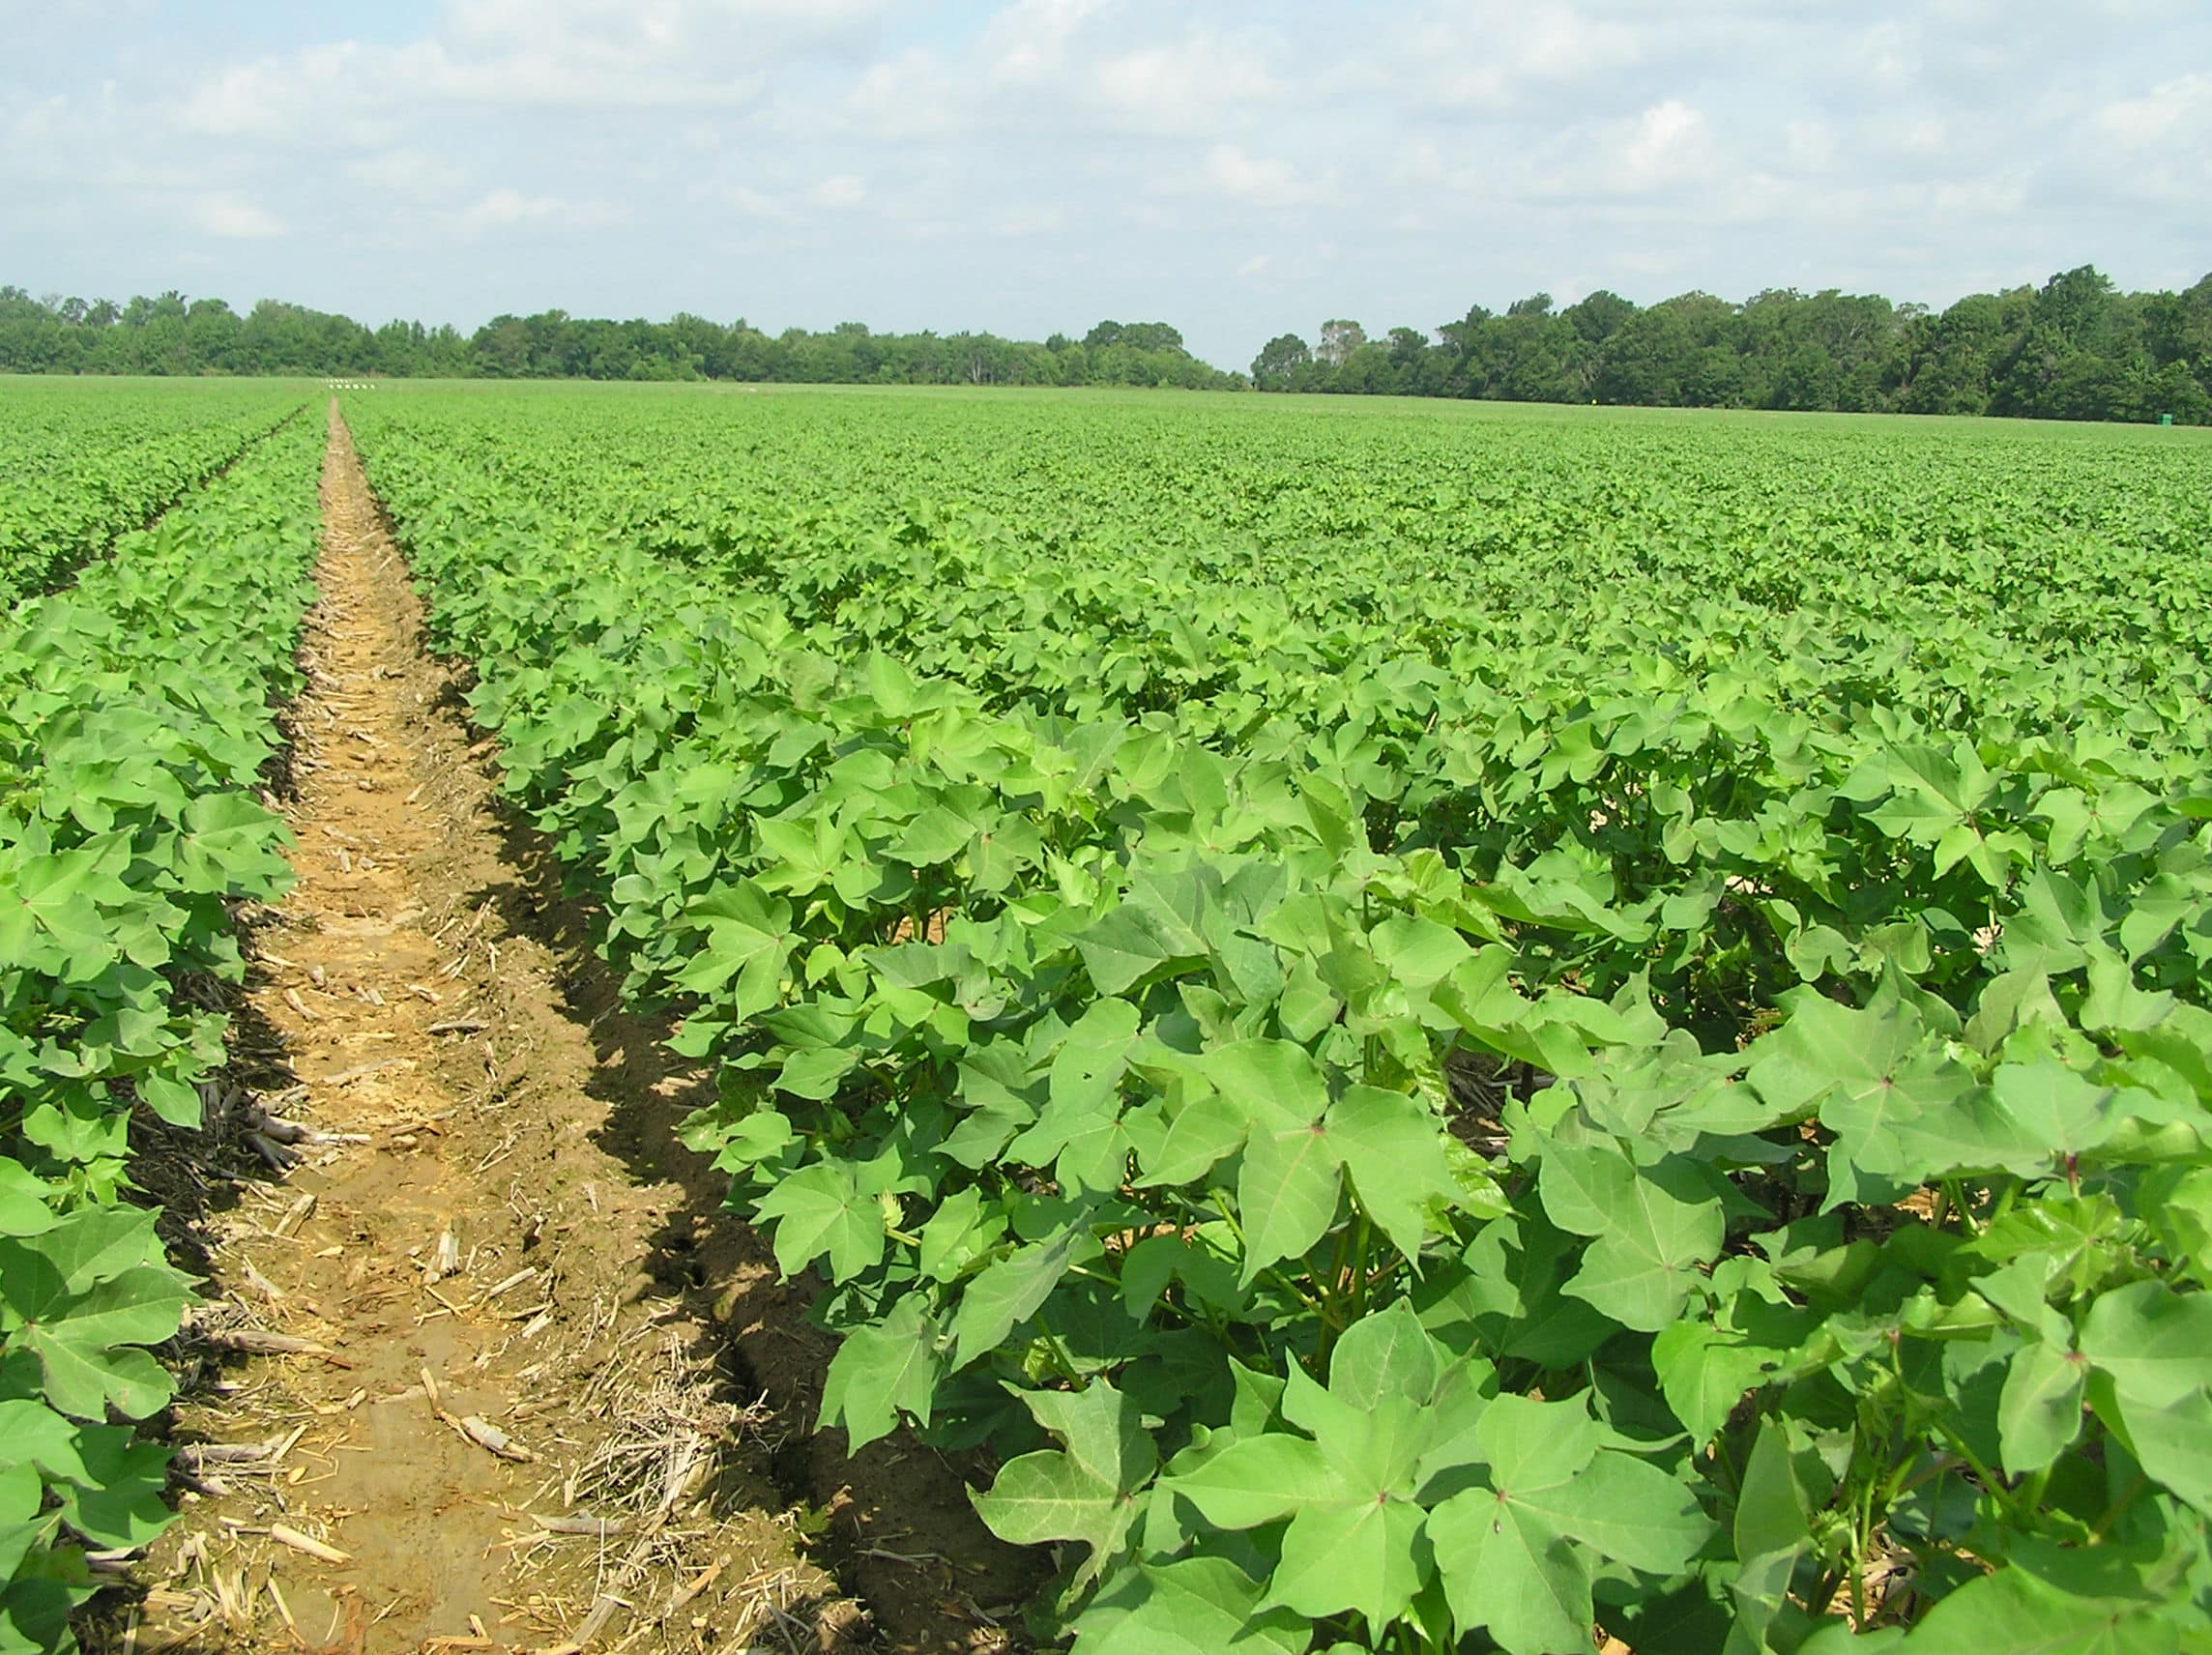 production economics of using watermelon seedmeal The present findings suggest watermelon seeds as considerable source of nutrients in the diet and may have health and economic benefits due to its fibre, minerals, phenolics content and antioxidant activity.